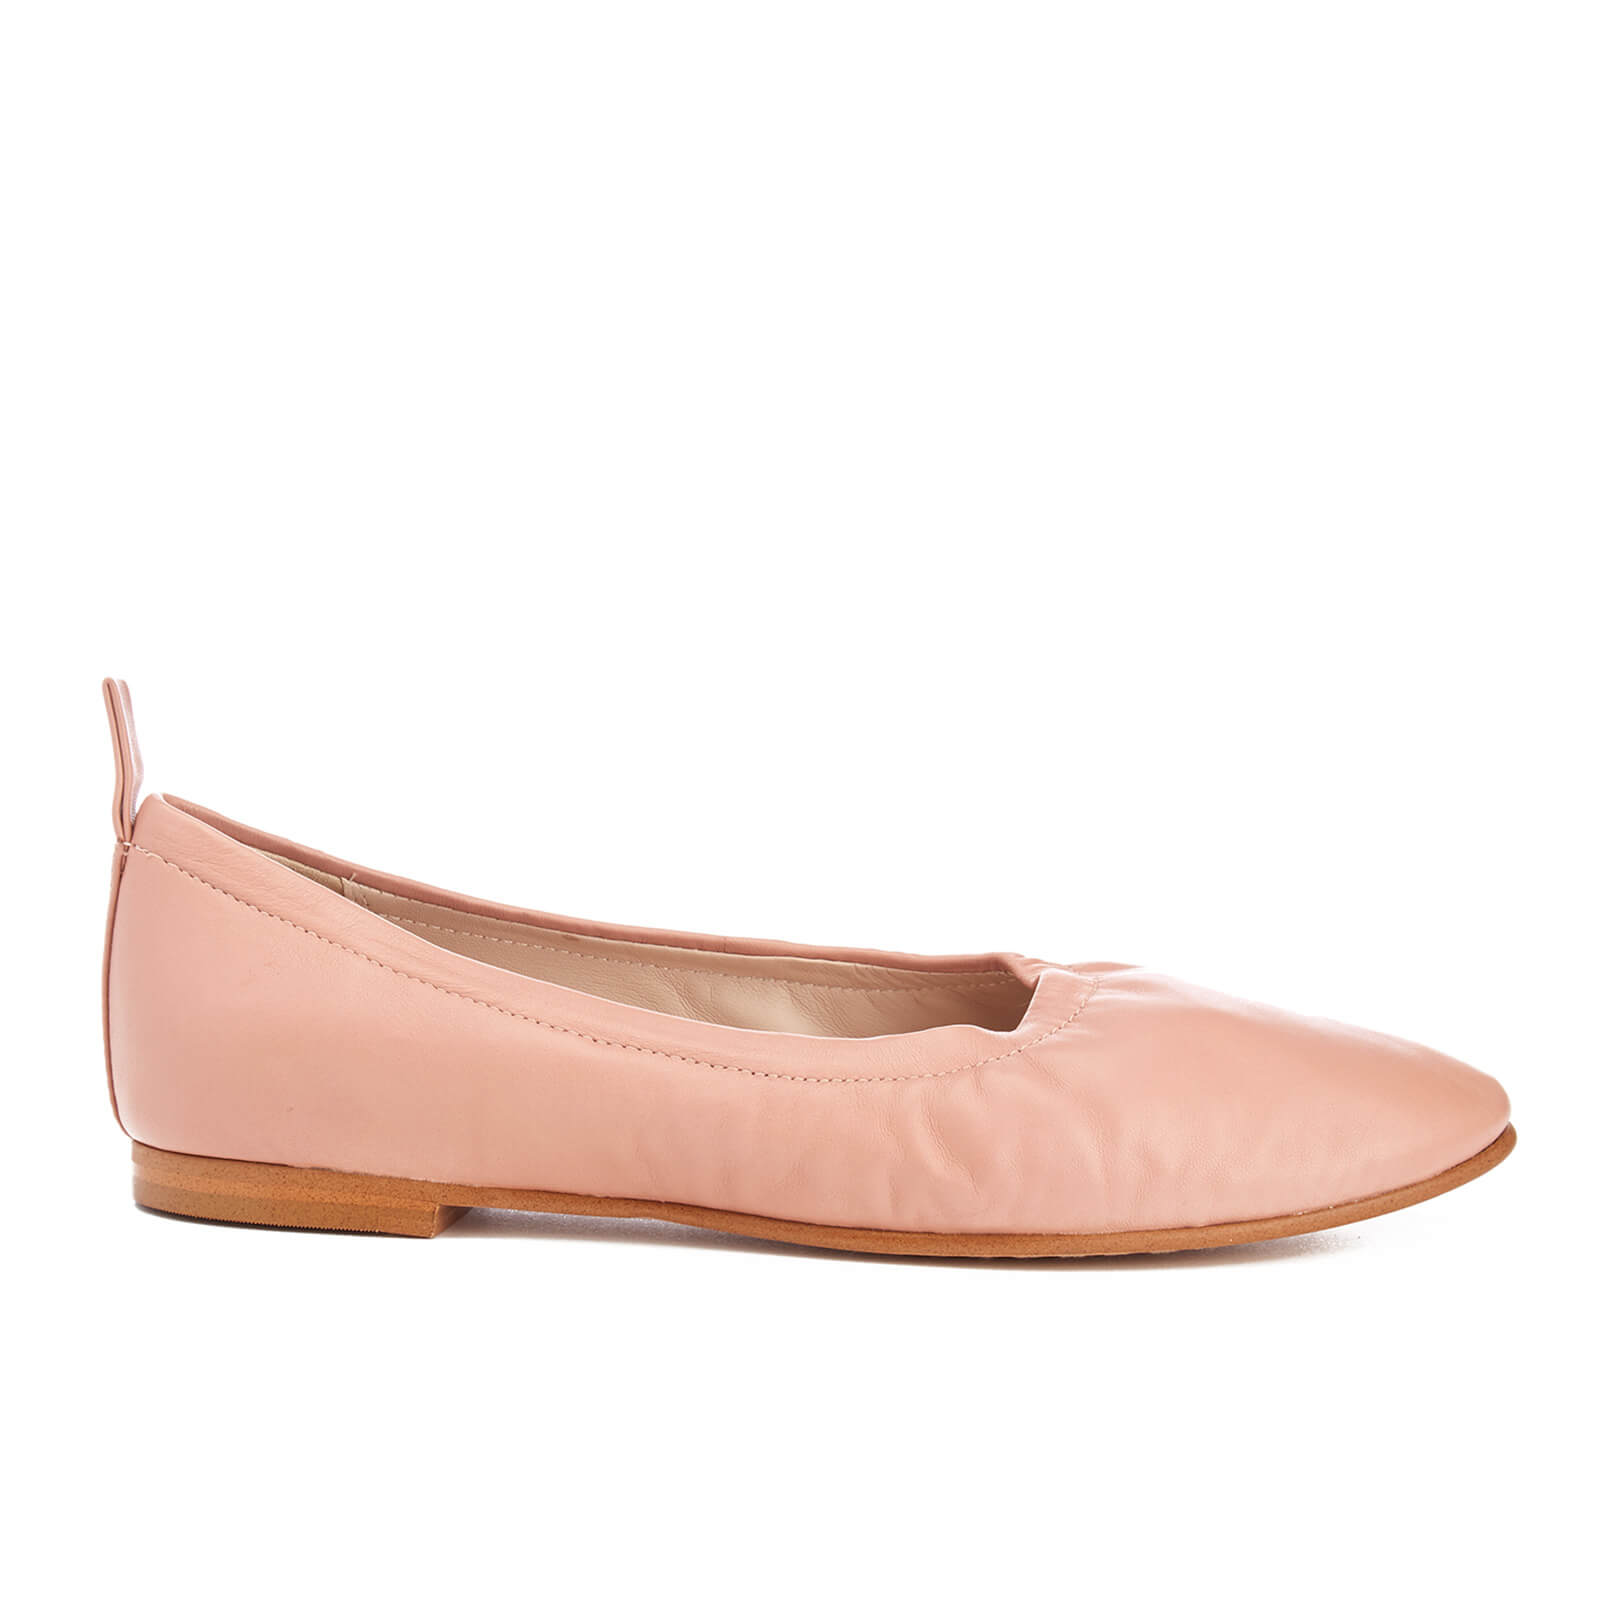 b55a69c7647c9 Clarks Women's Grace Mia Leather Ballet Flats - Dusty Pink | FREE UK  Delivery | Allsole